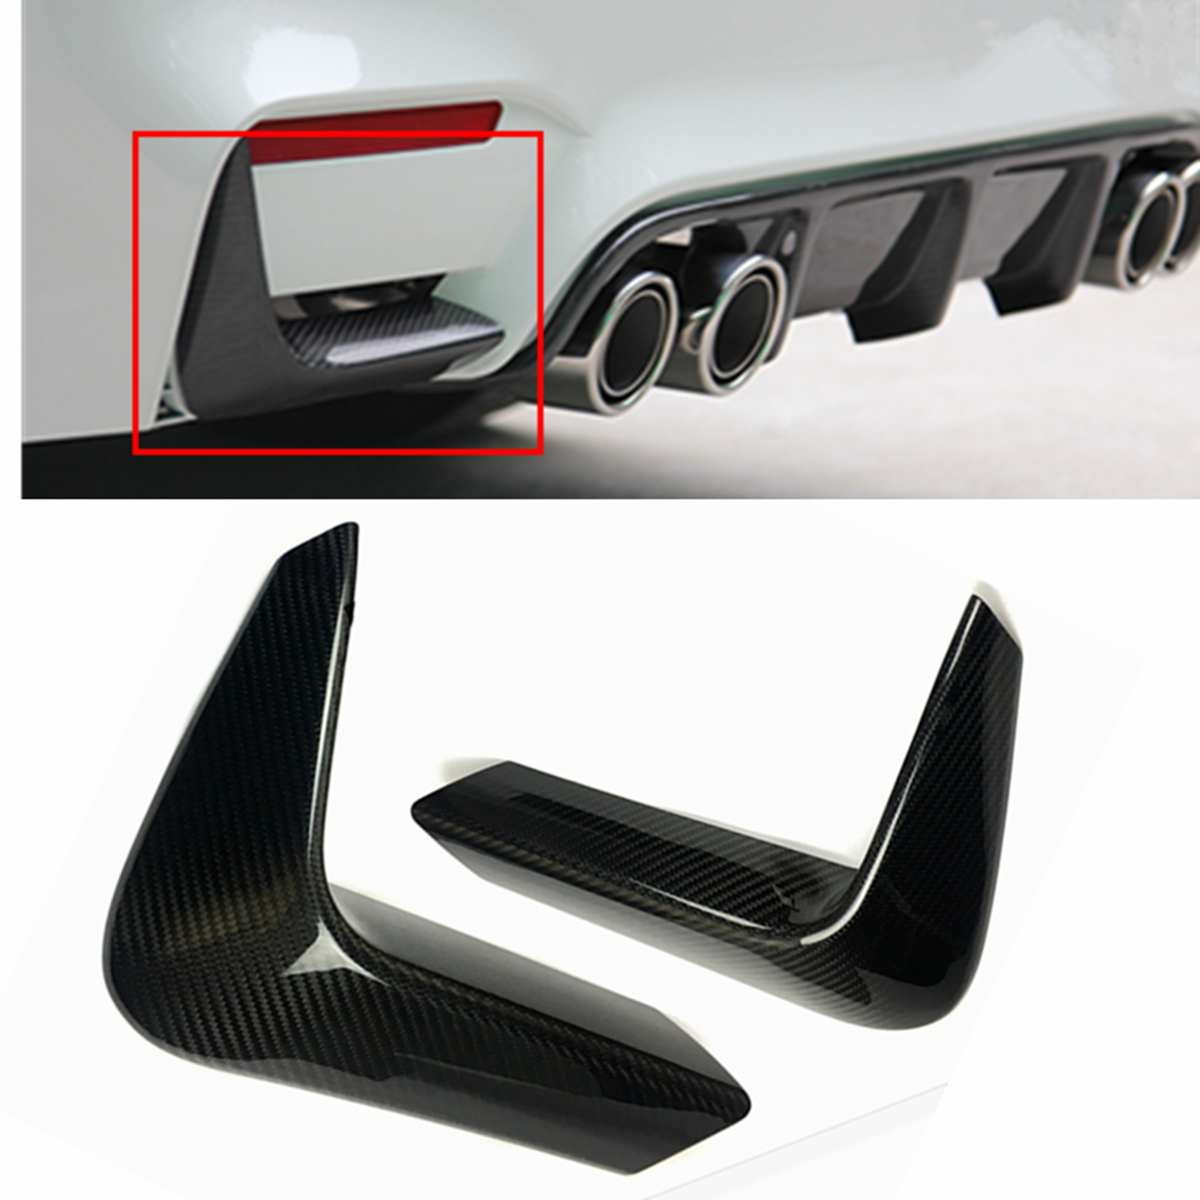 1Pair Car Carbon Fiber Rear Bumper Lower Corner Valance Covers Splitter Spoilers fit for BMW F80